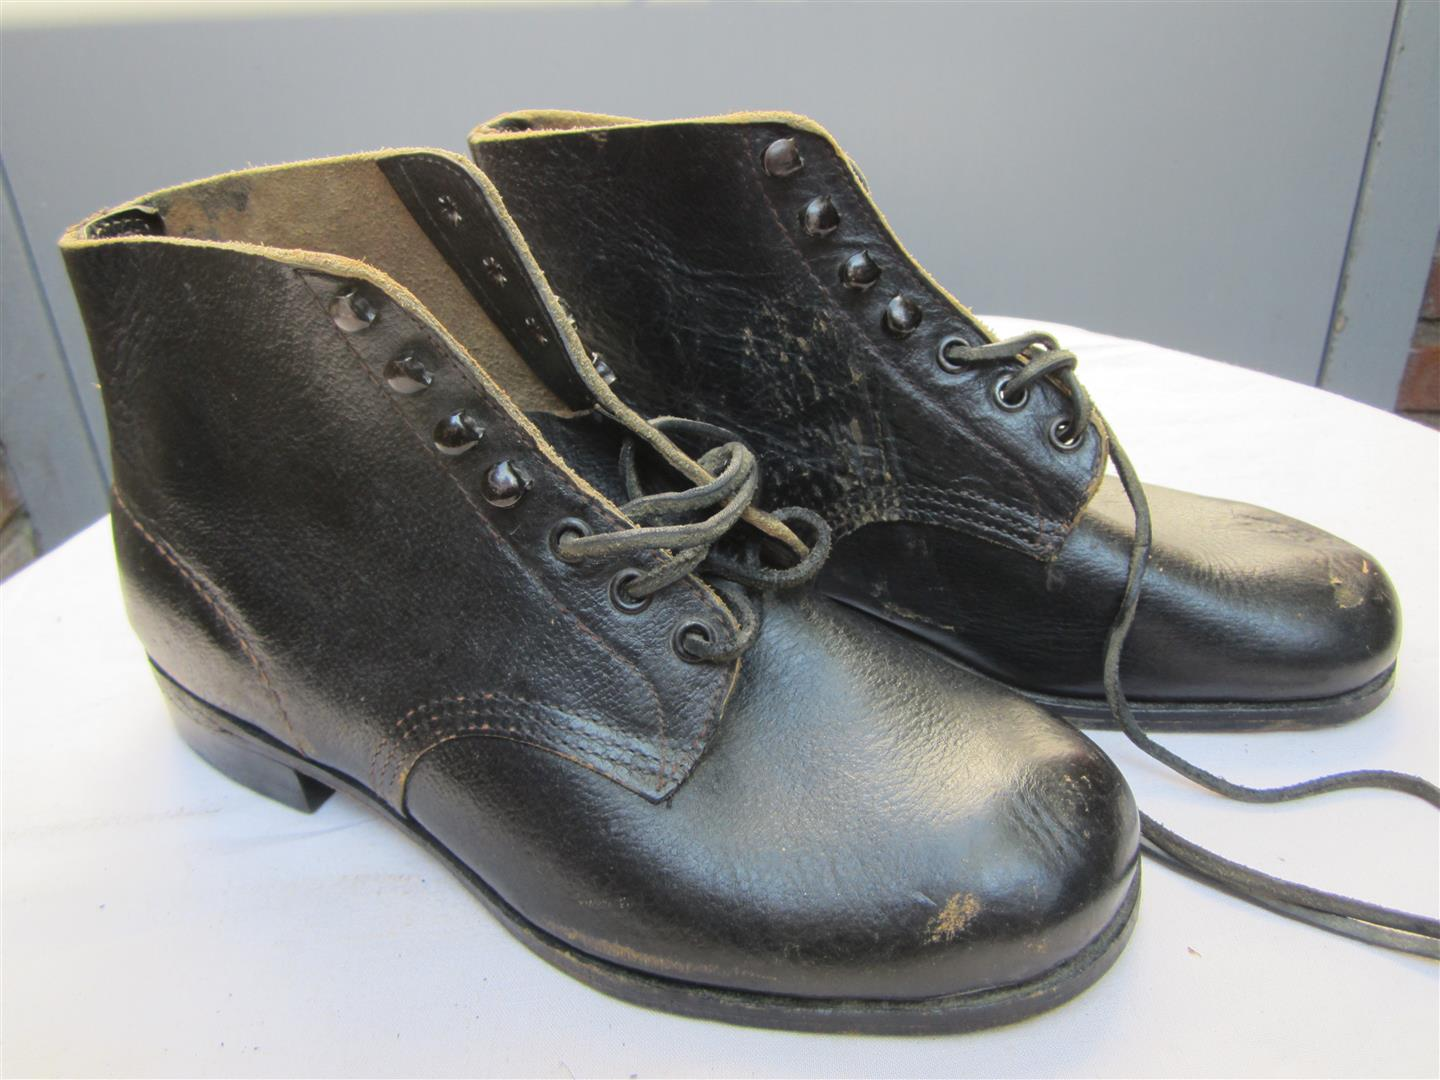 WW2 Black Panzer Boots